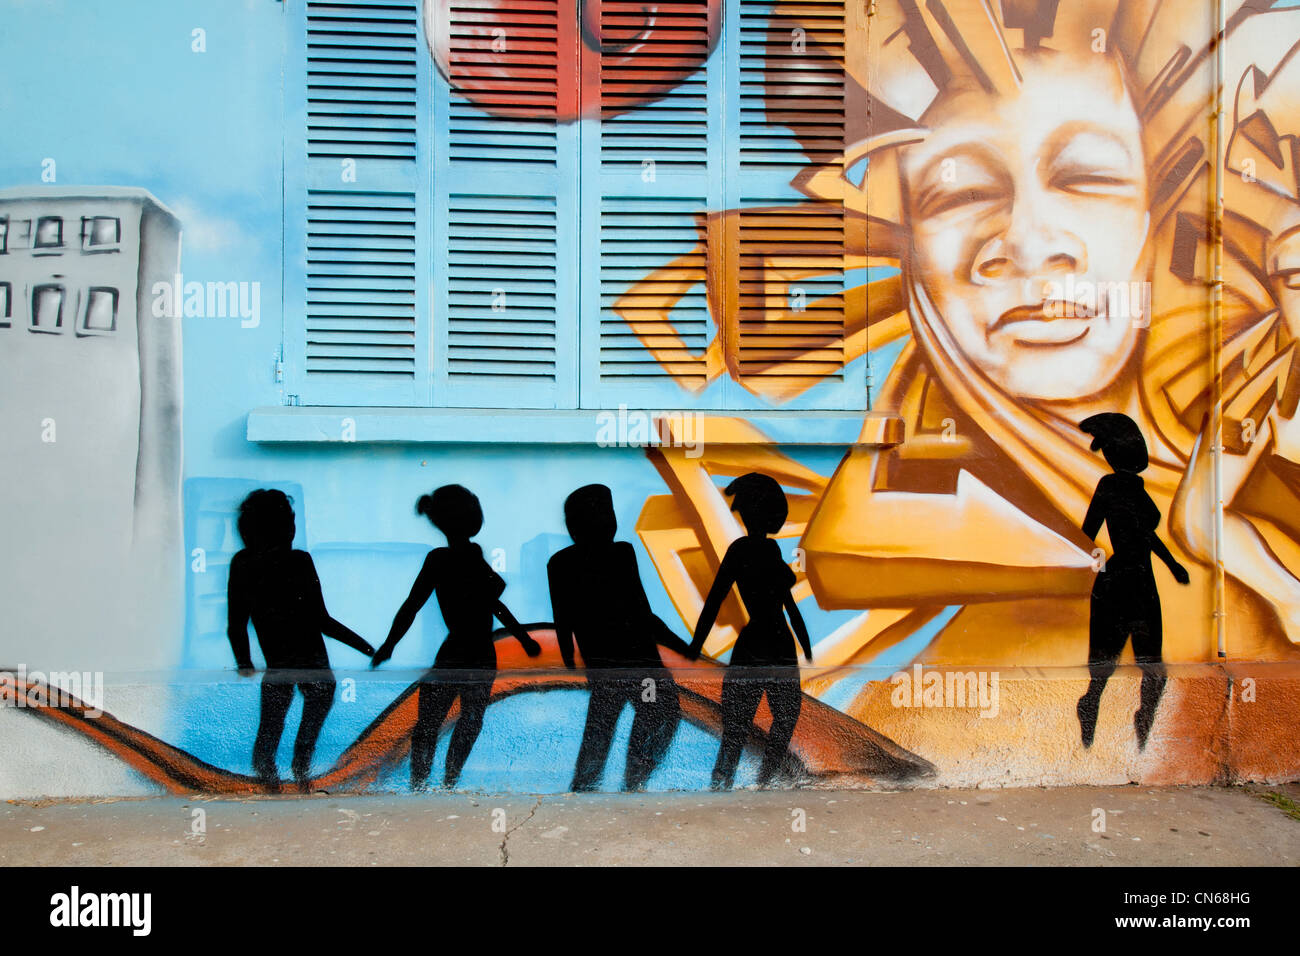 Painting on a wall Noumea New Caledonia - Stock Image